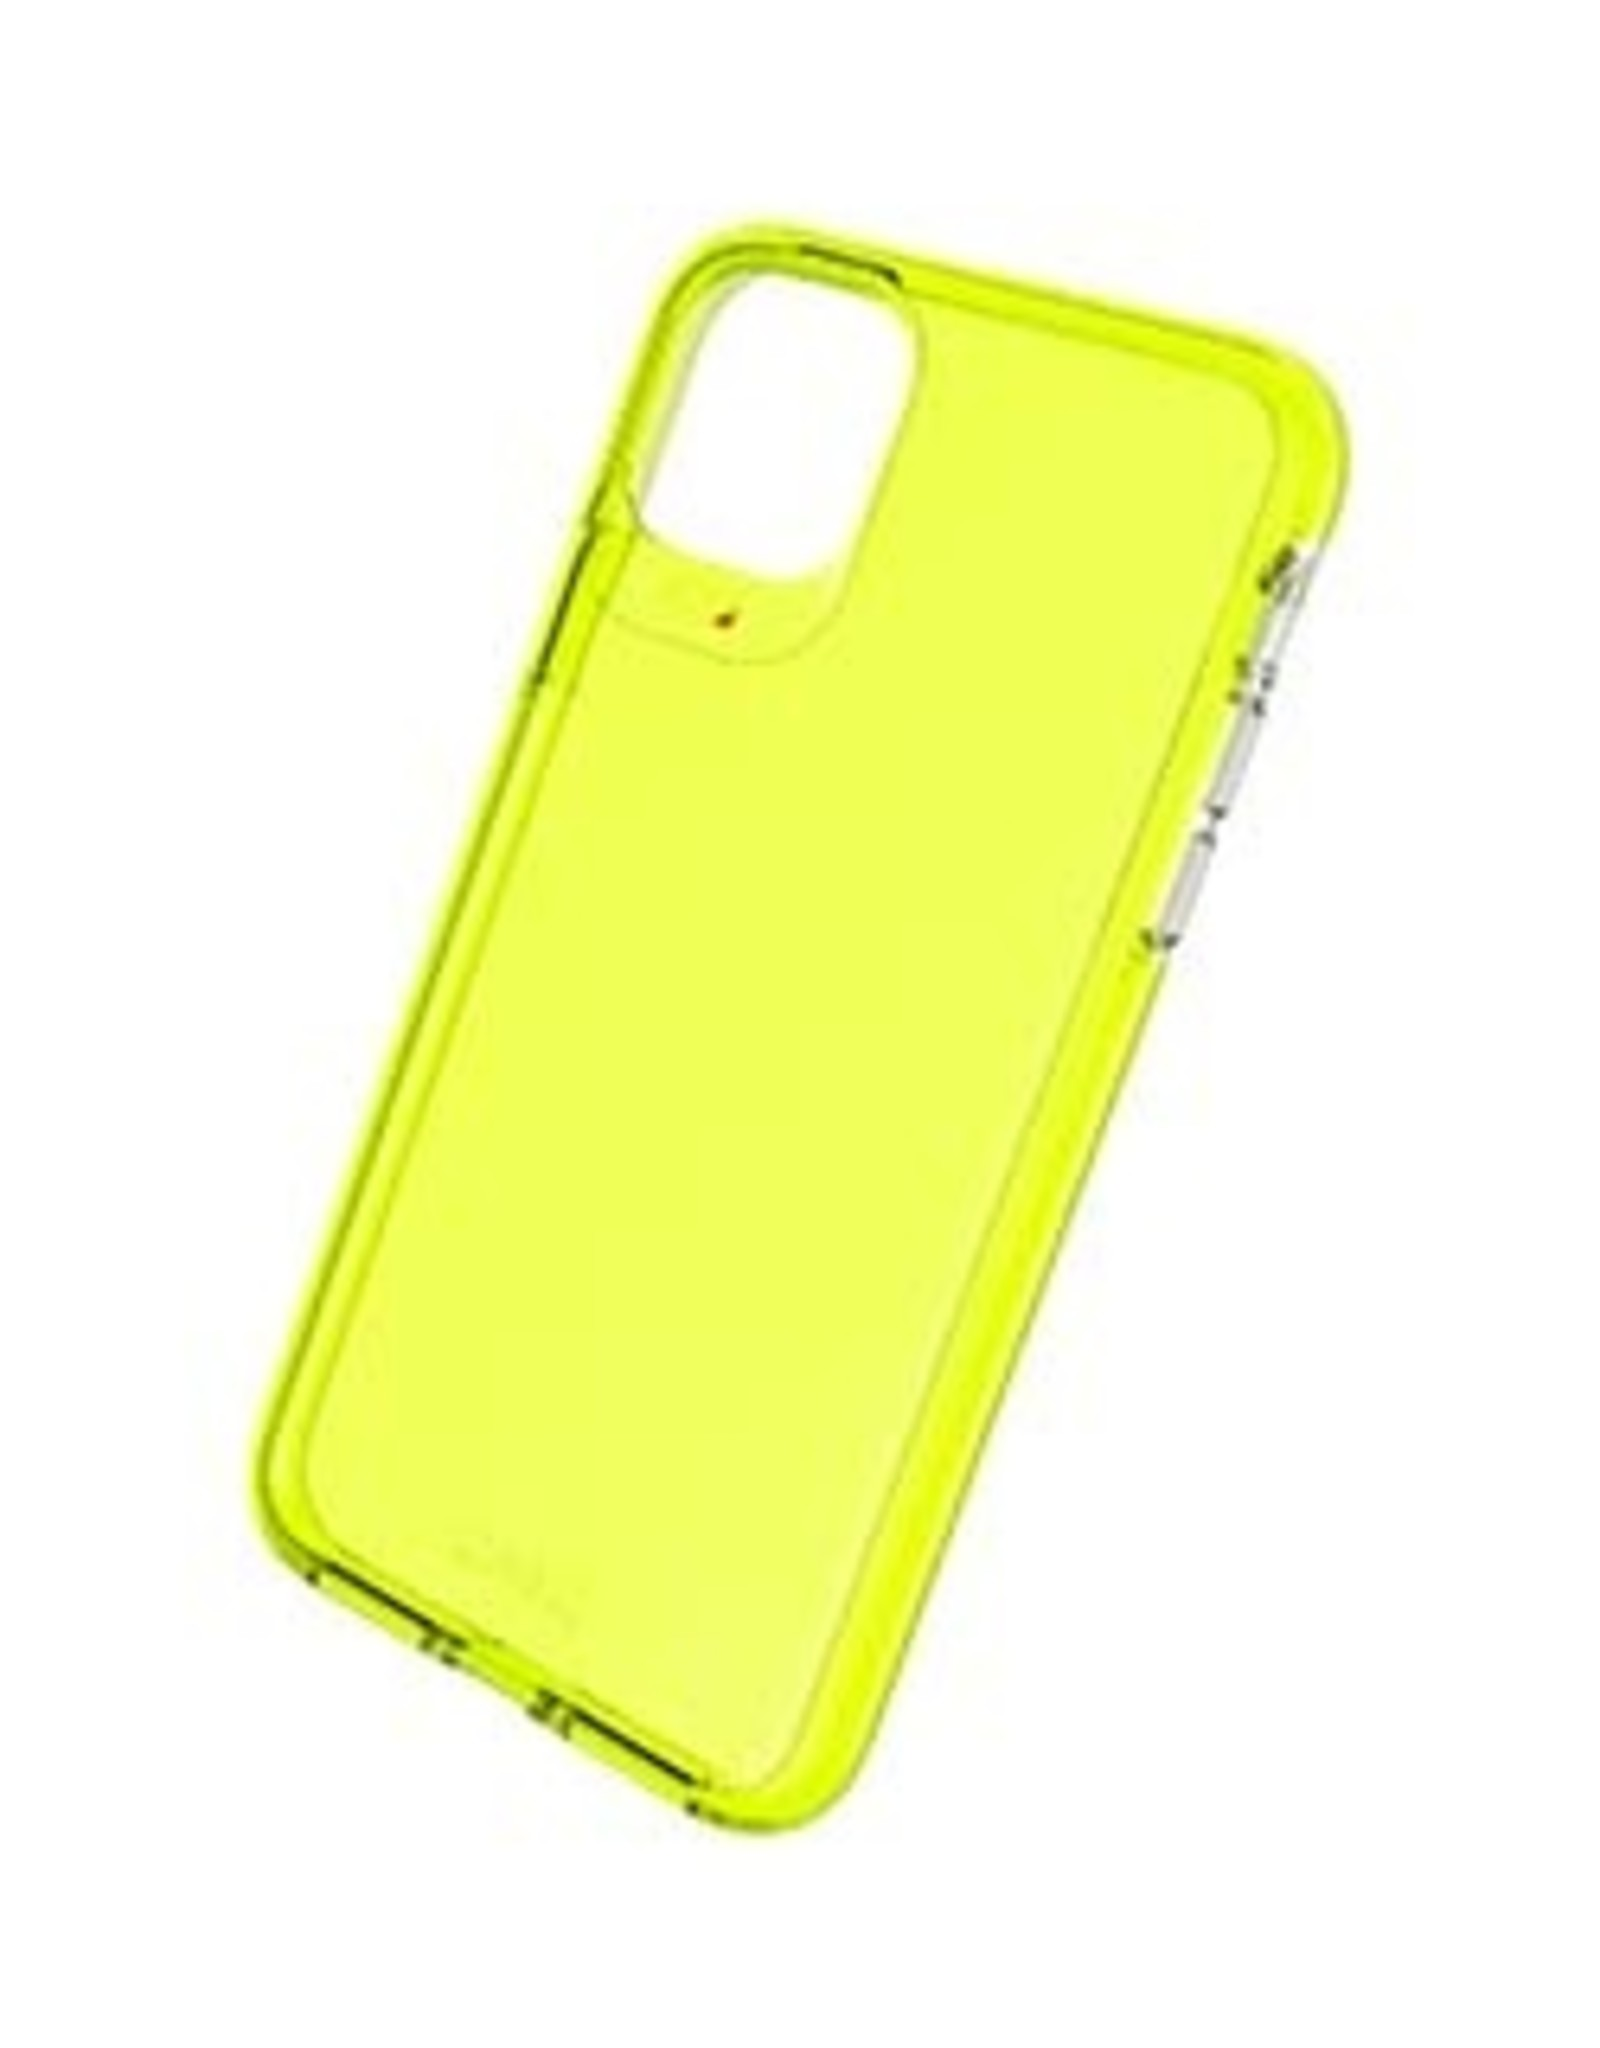 GEAR4 GEAR4 | iPhone 11 Pro Max  D3O Yellow Crystal Palace Neon Case 15-04787